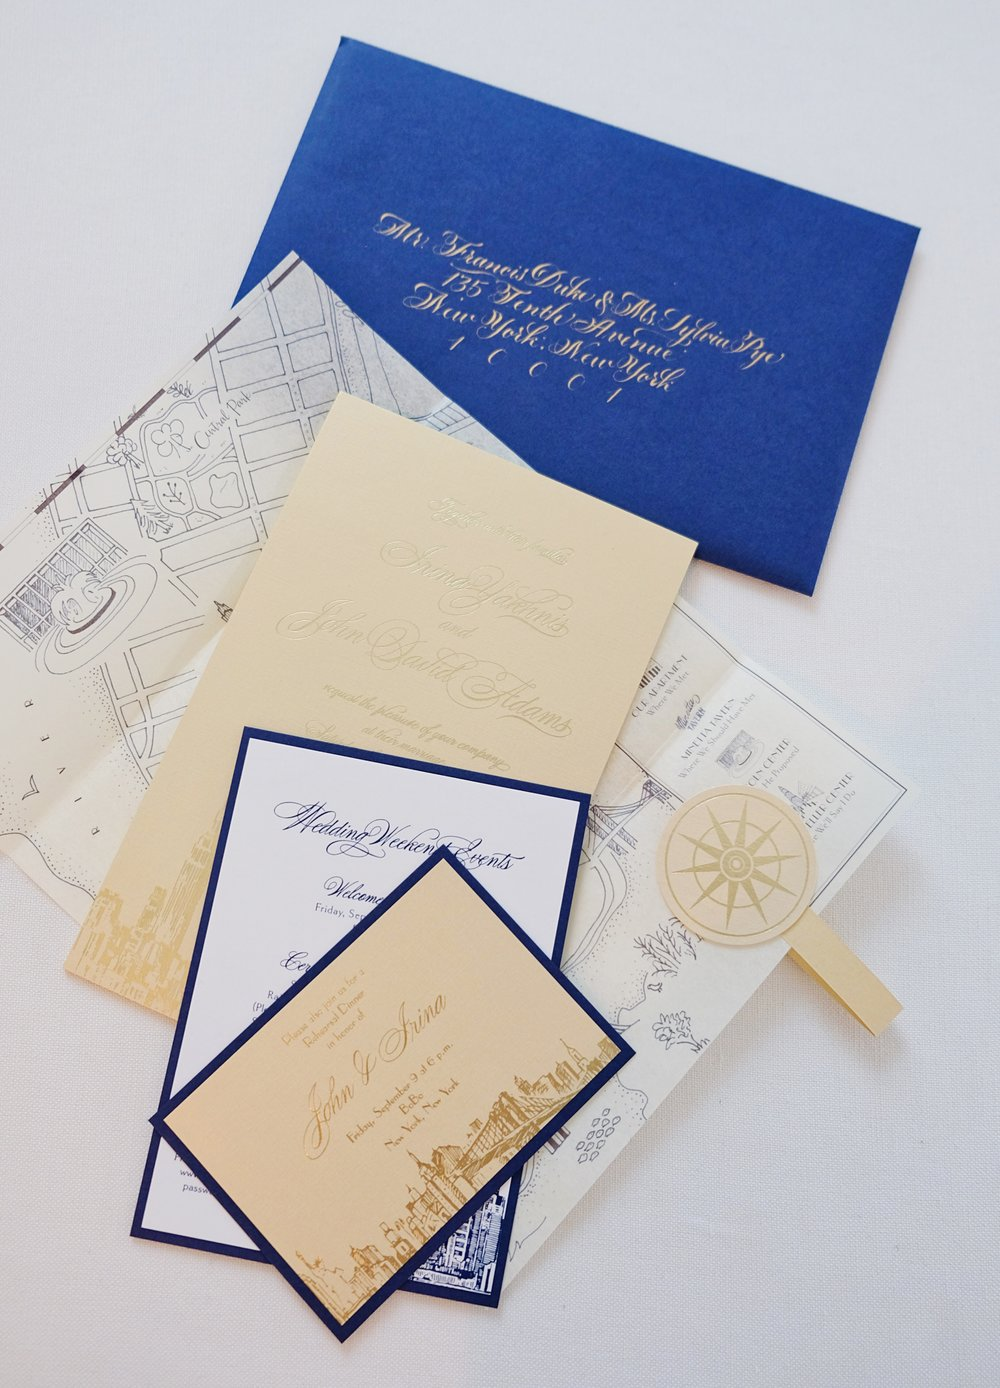 Custom wedding invitation suite with custom illustrated map, hand-drawn NYC sketches, embossing and calligraphy for the envelope addressing // by Chavelli www.chavelli.com